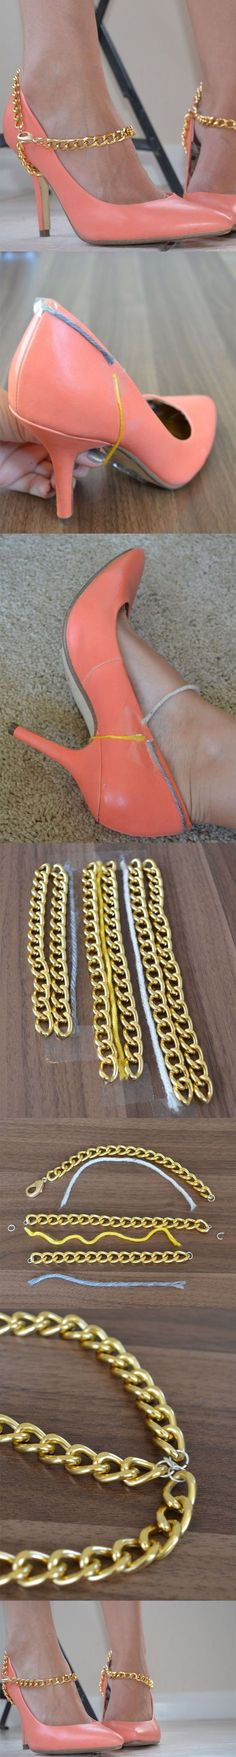 DIY Shoe ankle straps - I have to say this is great b/c I don't do as well in shoes that don't have ankle straps